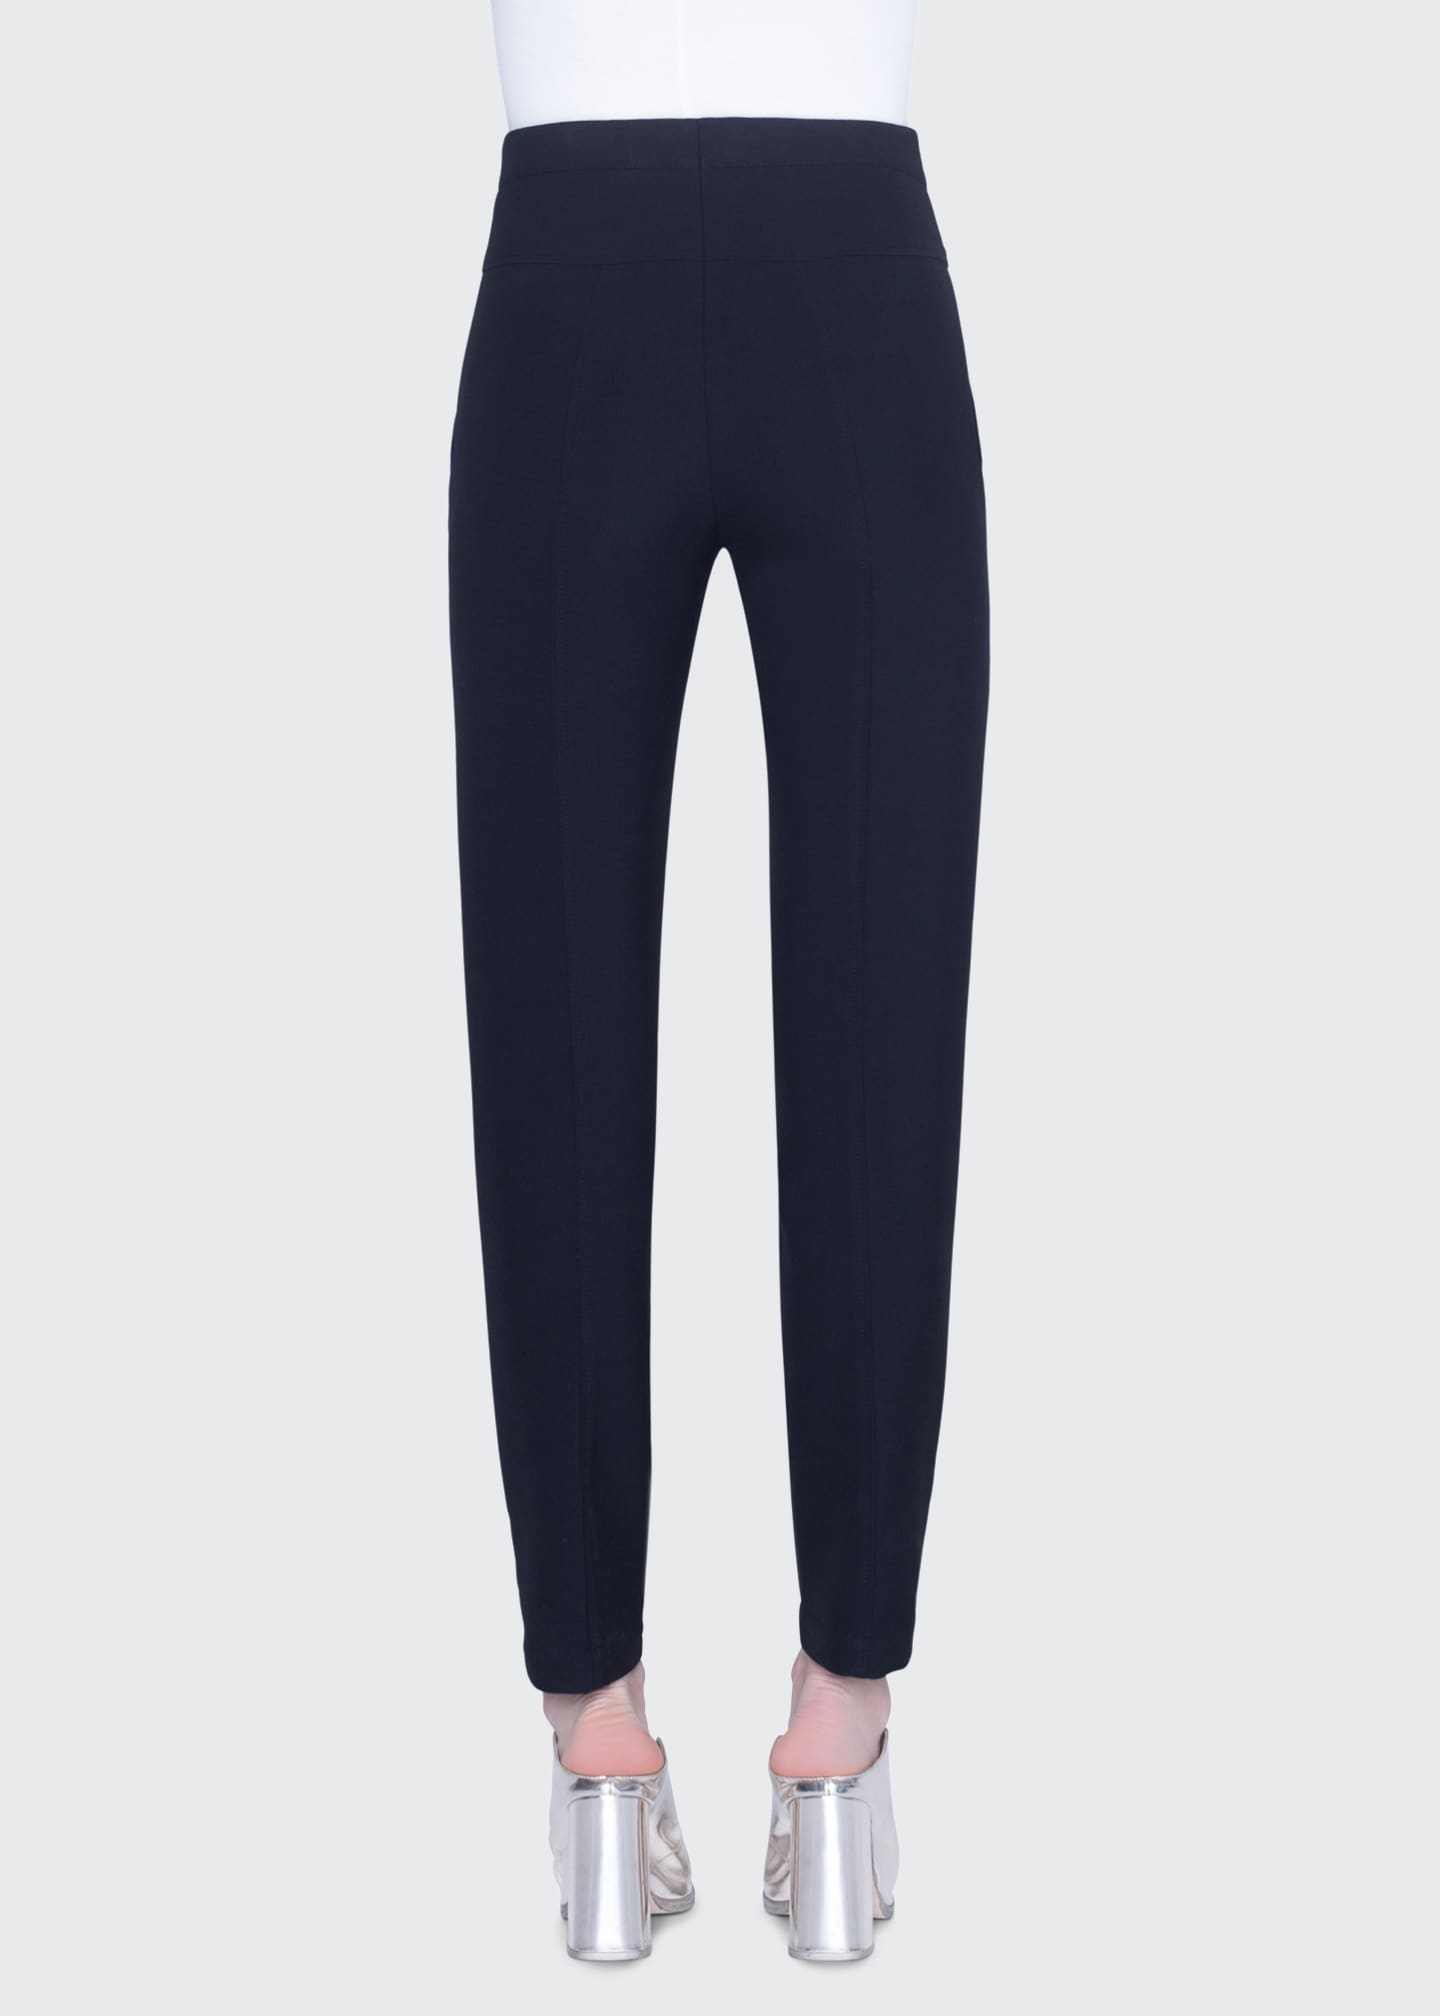 Image 2 of 2: Freya Pebbled Crepe High-Rise Pants